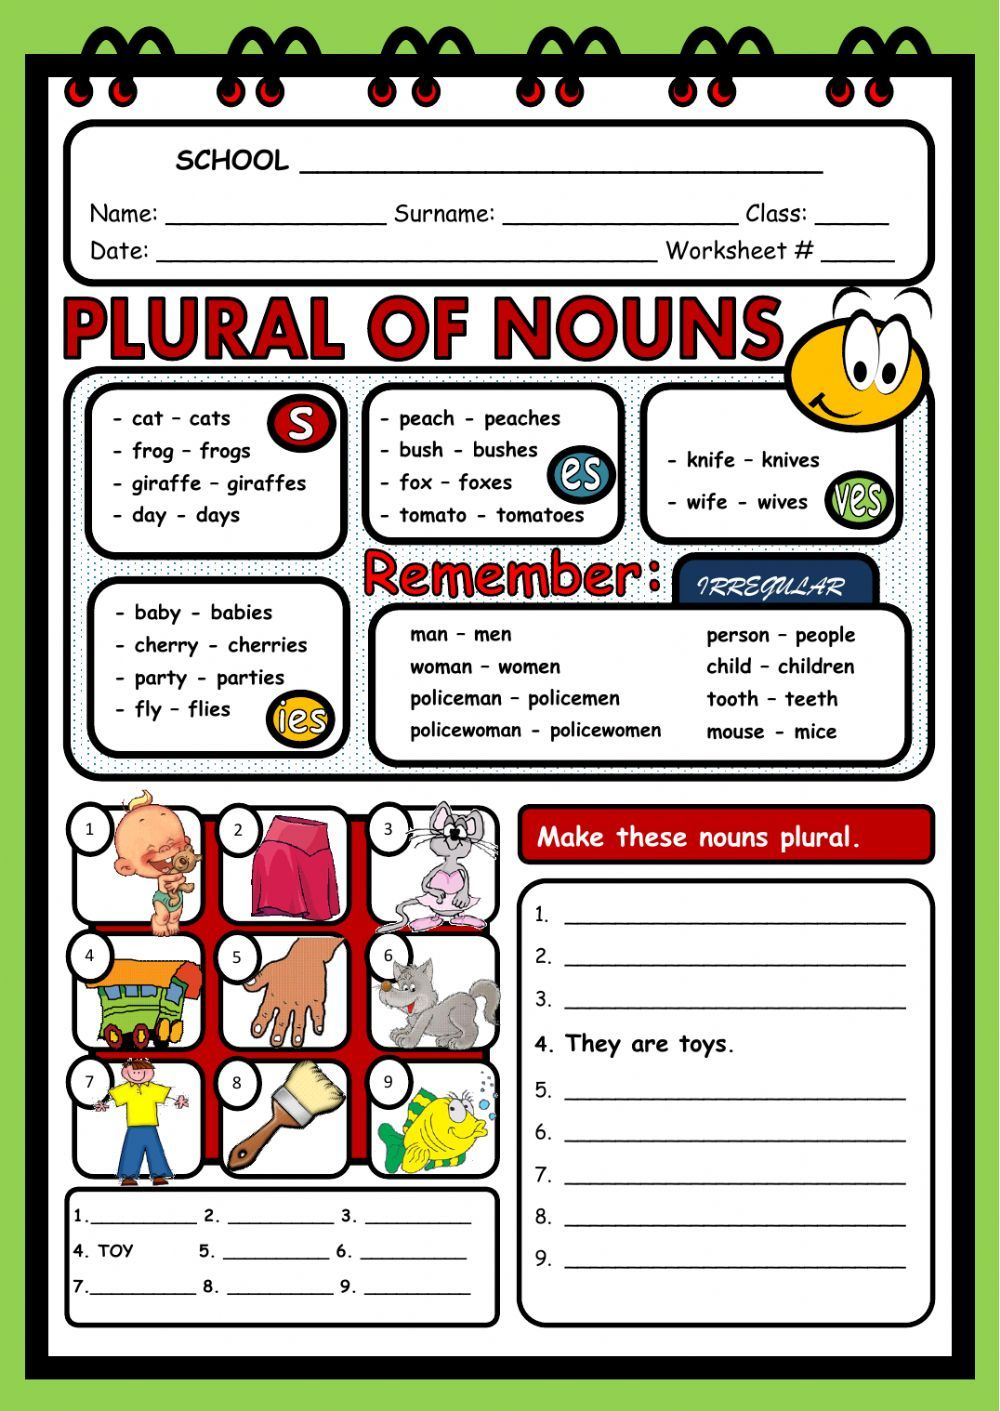 The Plural Of Nouns Interactive And Downloadable Worksheet You Can Do The Exercises Online Or Download The Worksheet As Pdf Plurals Nouns Plural Nouns